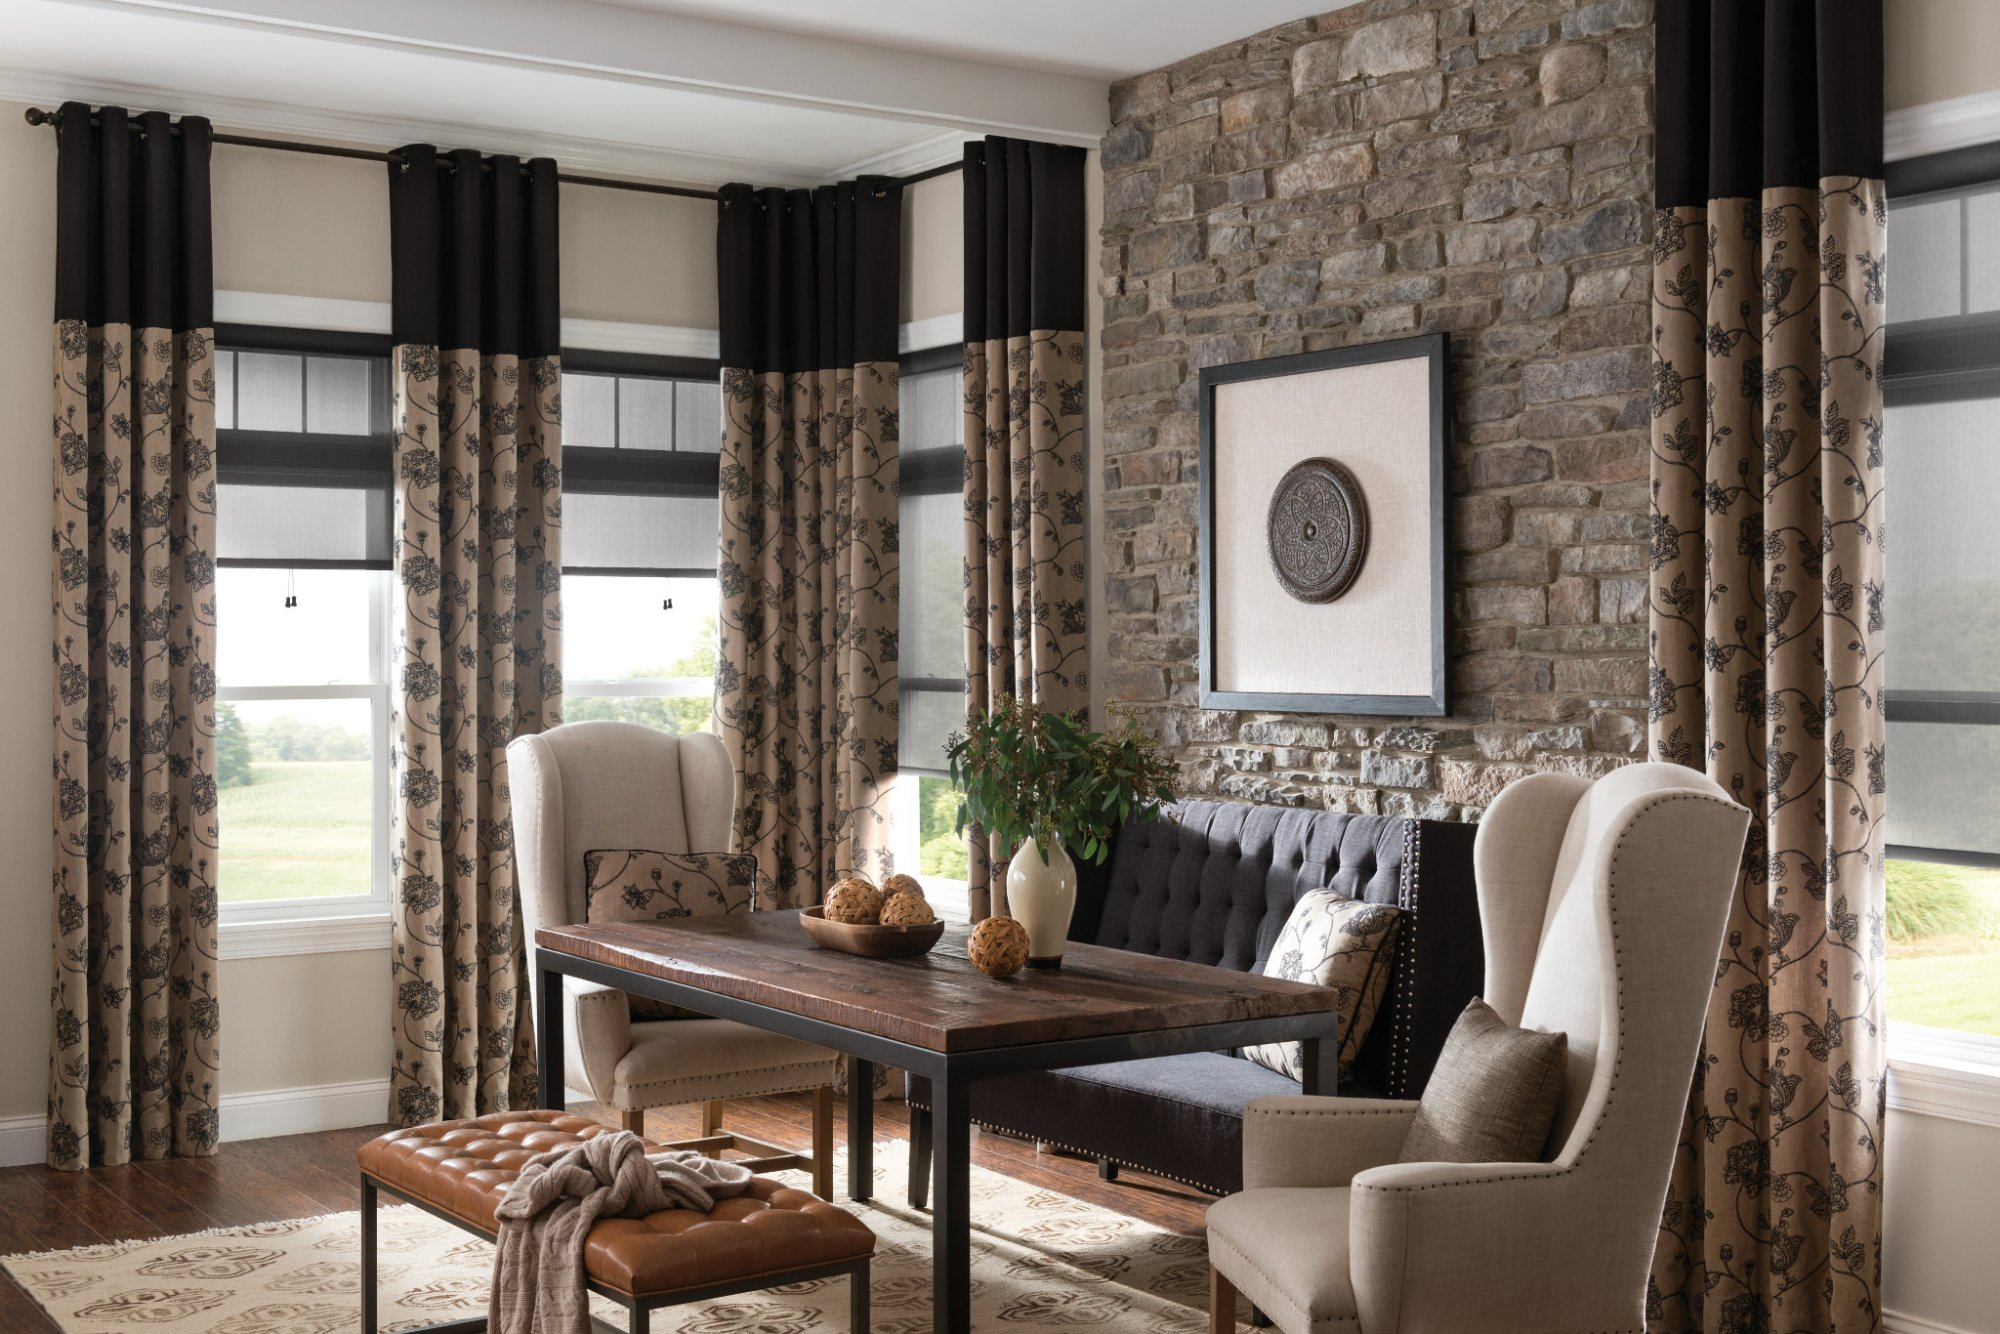 25% off - Retail on all Graber Drapes and Fabrics till August 31call J and J Blind 479 646 6339